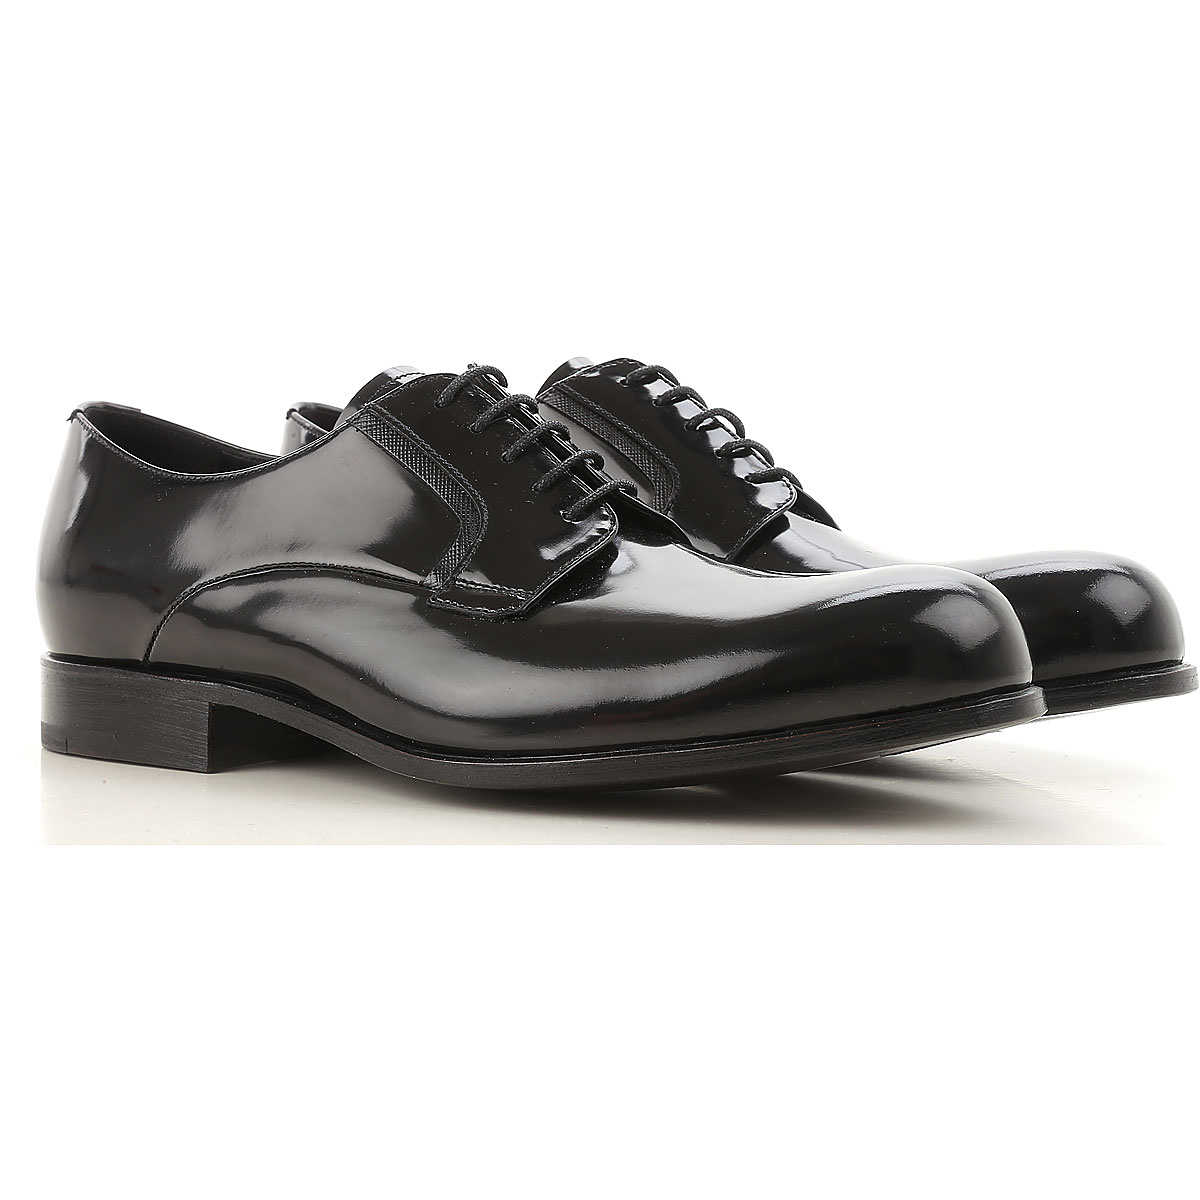 Prada Lace Up Shoes for Men Oxfords Derbies and Brogues On Sale in Outlet - GOOFASH